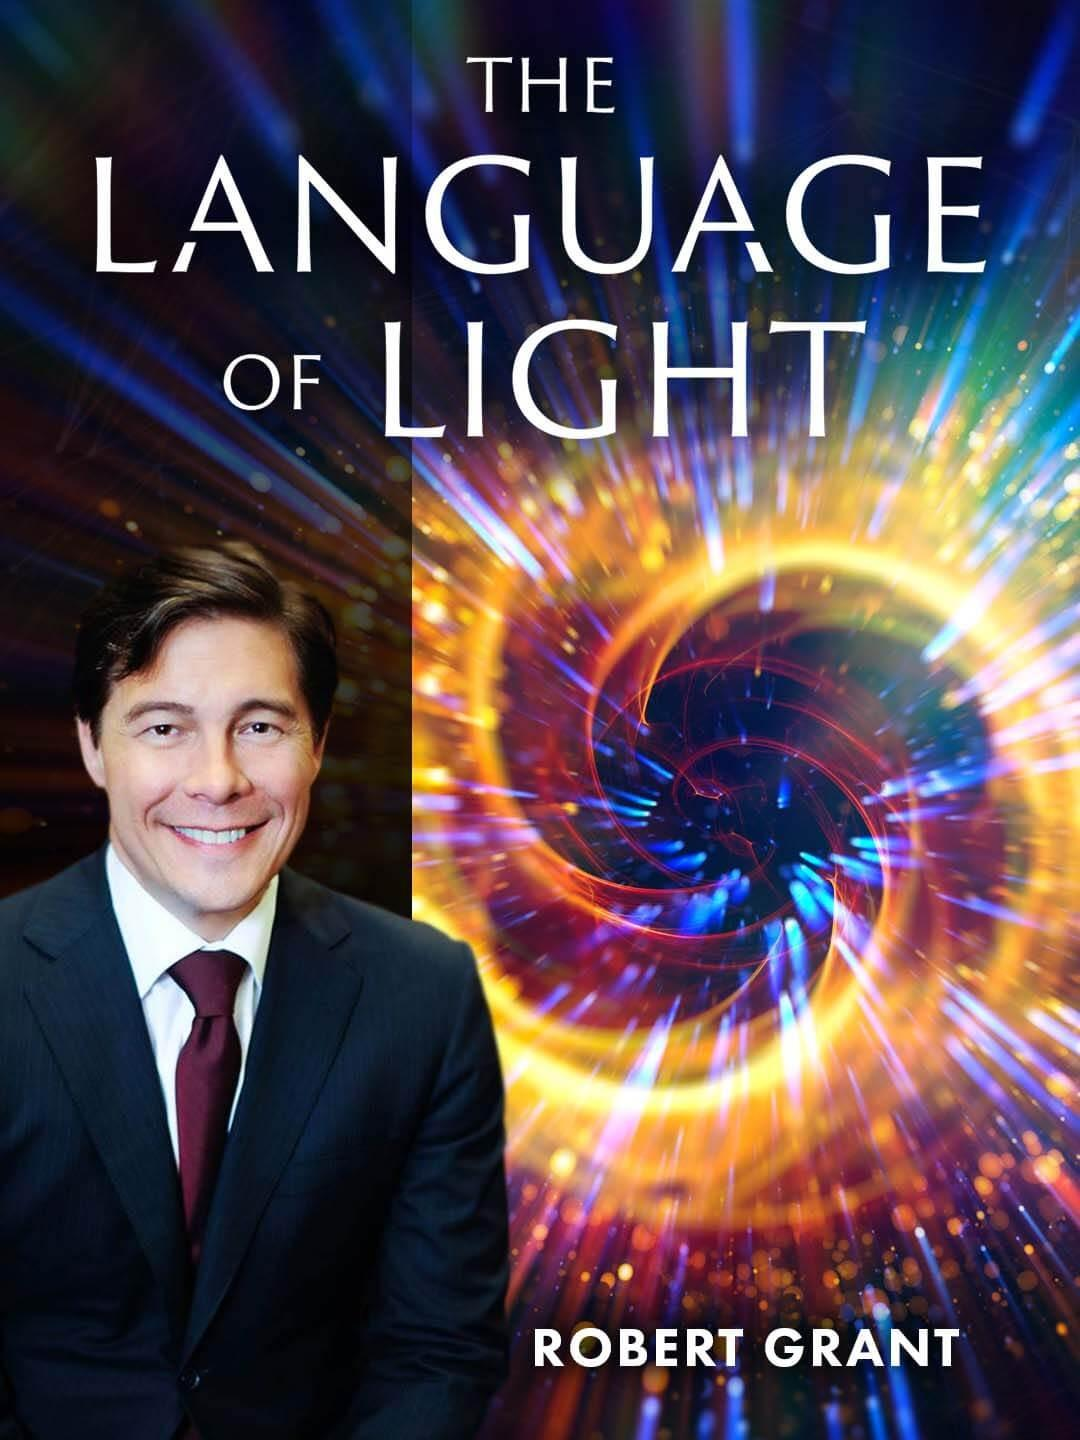 The Language of Light, a Resonance Academy Elective from faculty member, Robert Grant